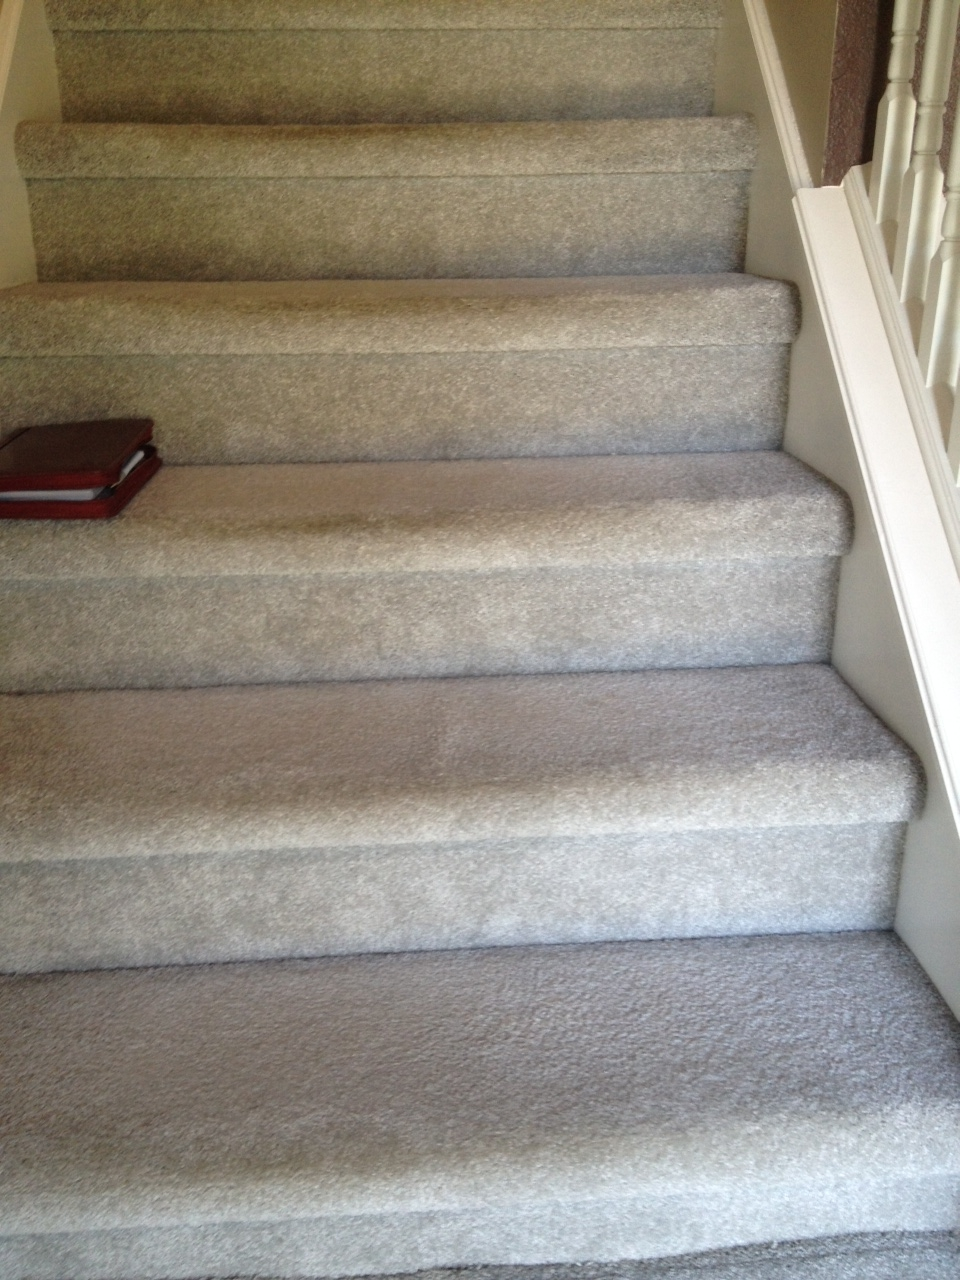 Carpet On Stairs Not Installed Correctly Indianapolis Carpet   Putting Carpet On Stairs   Design   Wear And Tear   Commercial   Stair Turned   Step